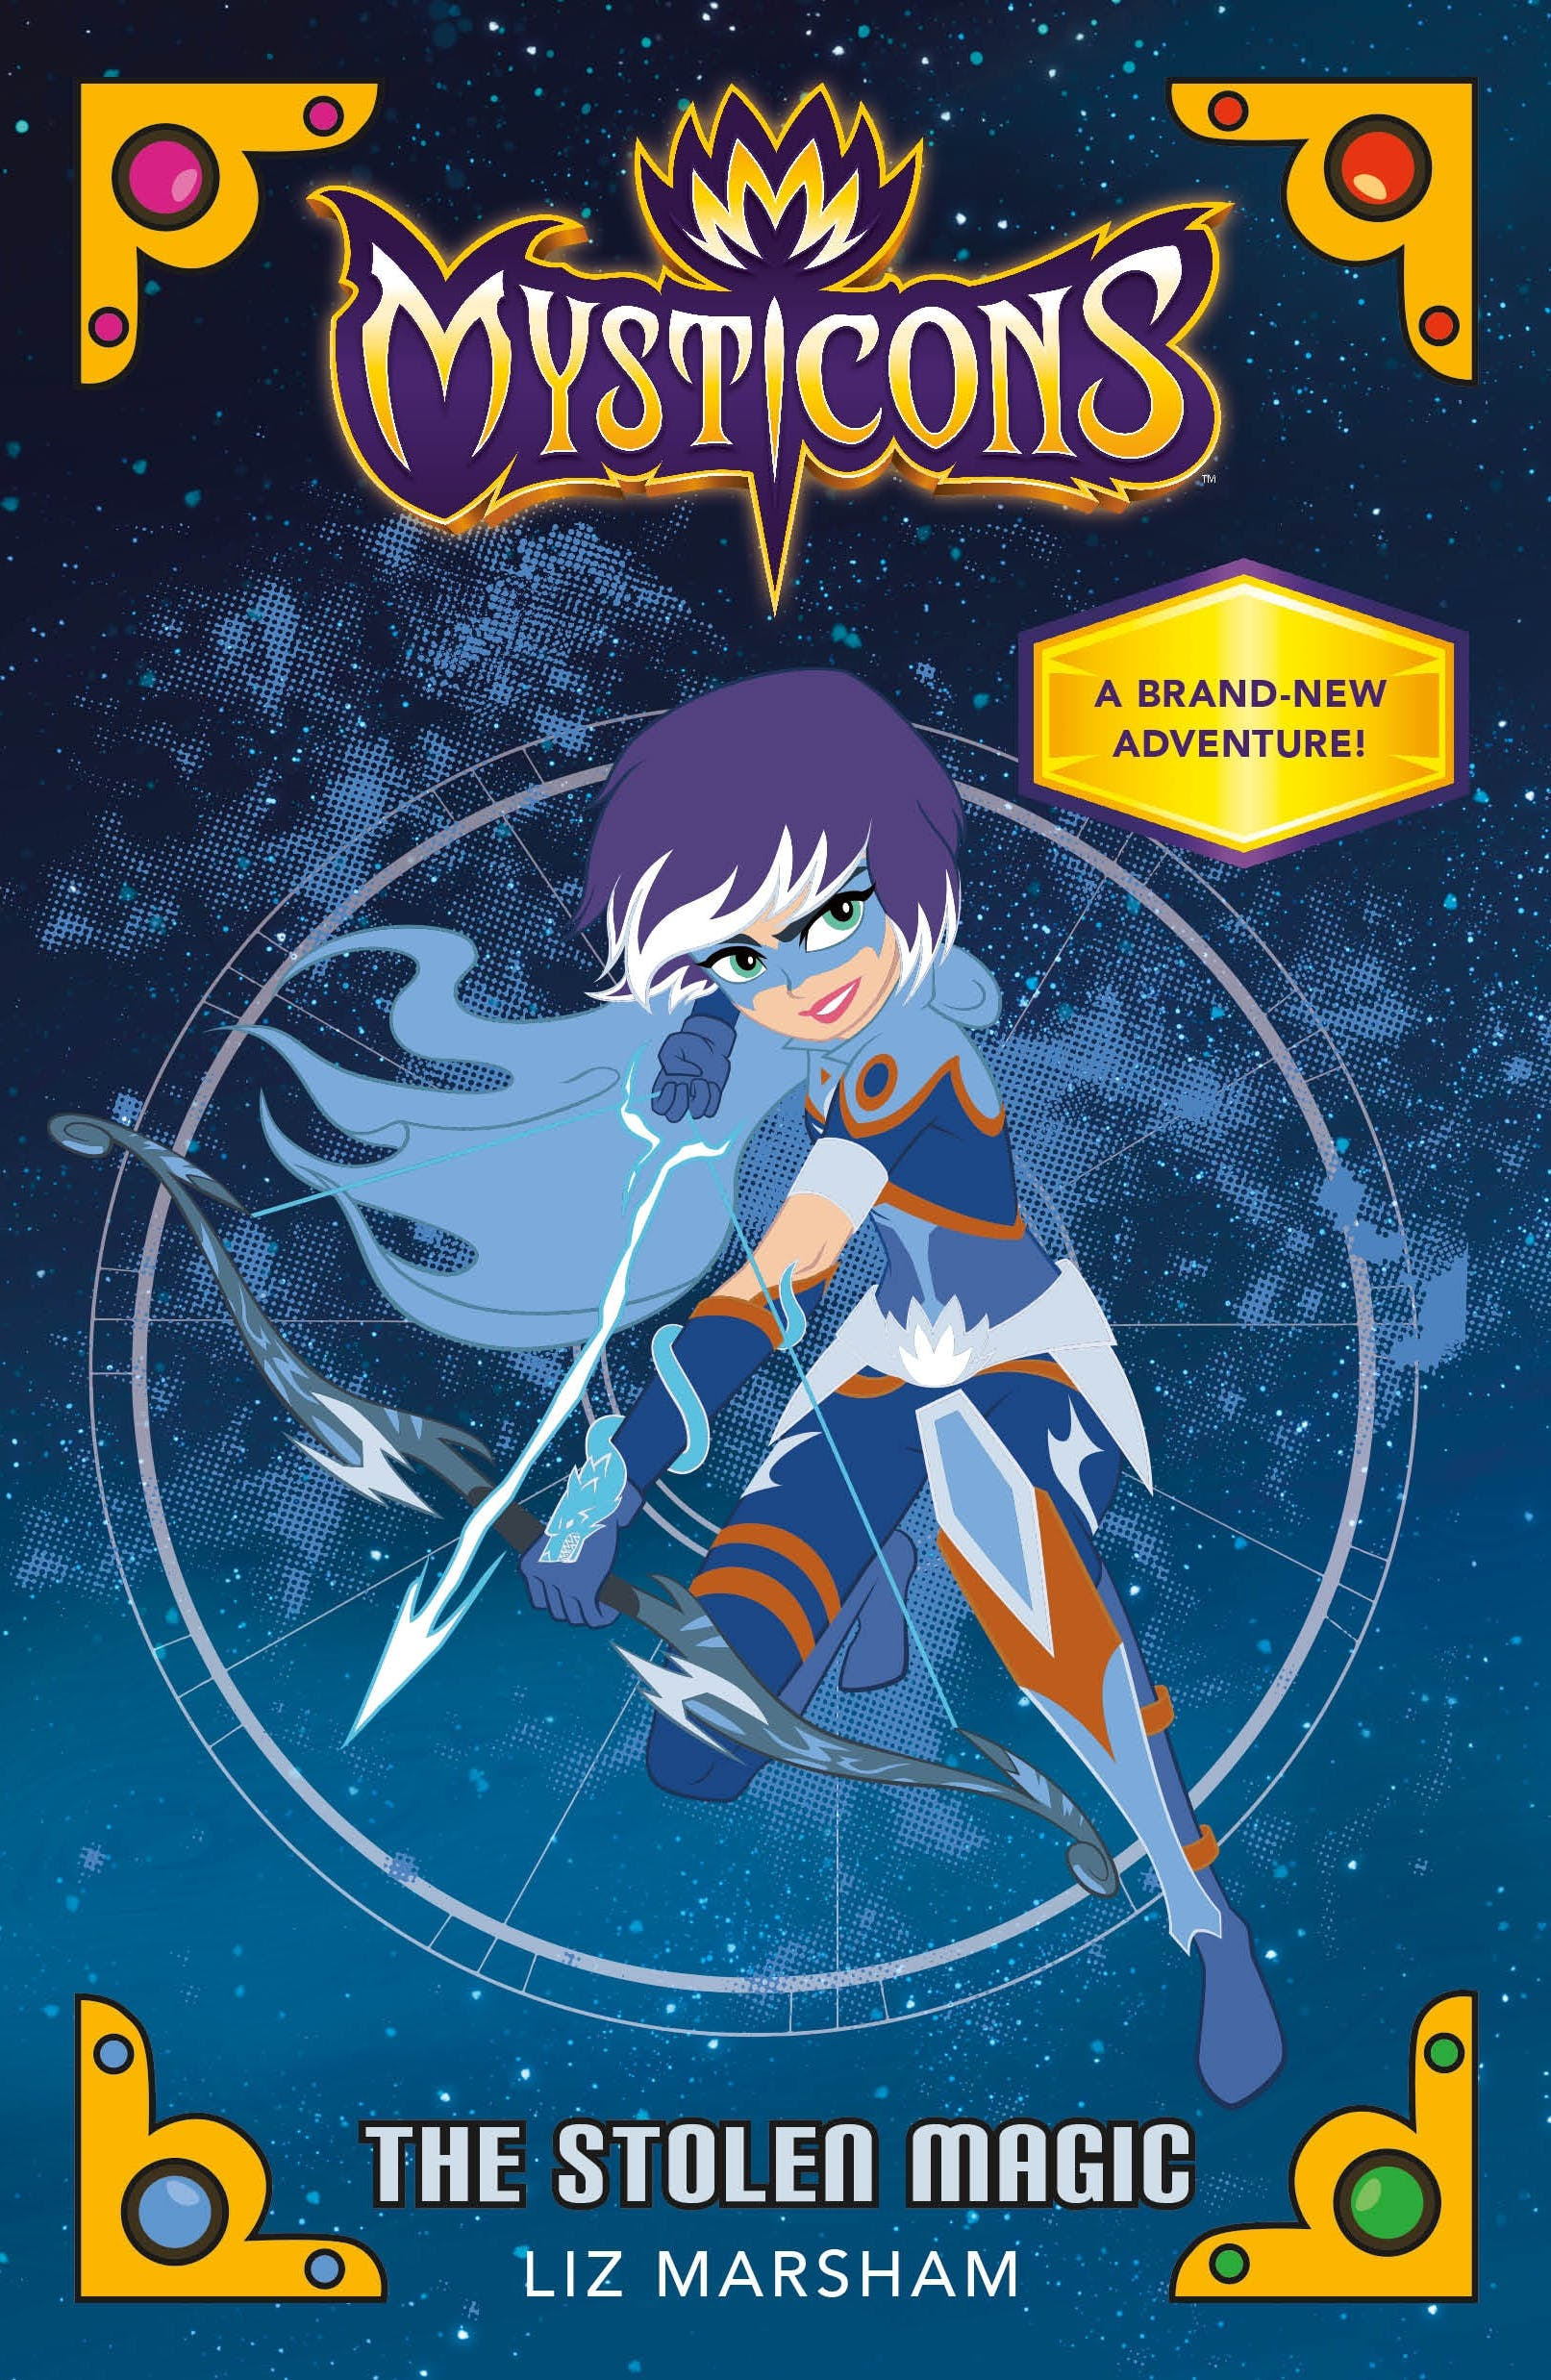 Image of Mysticons: The Stolen Magic